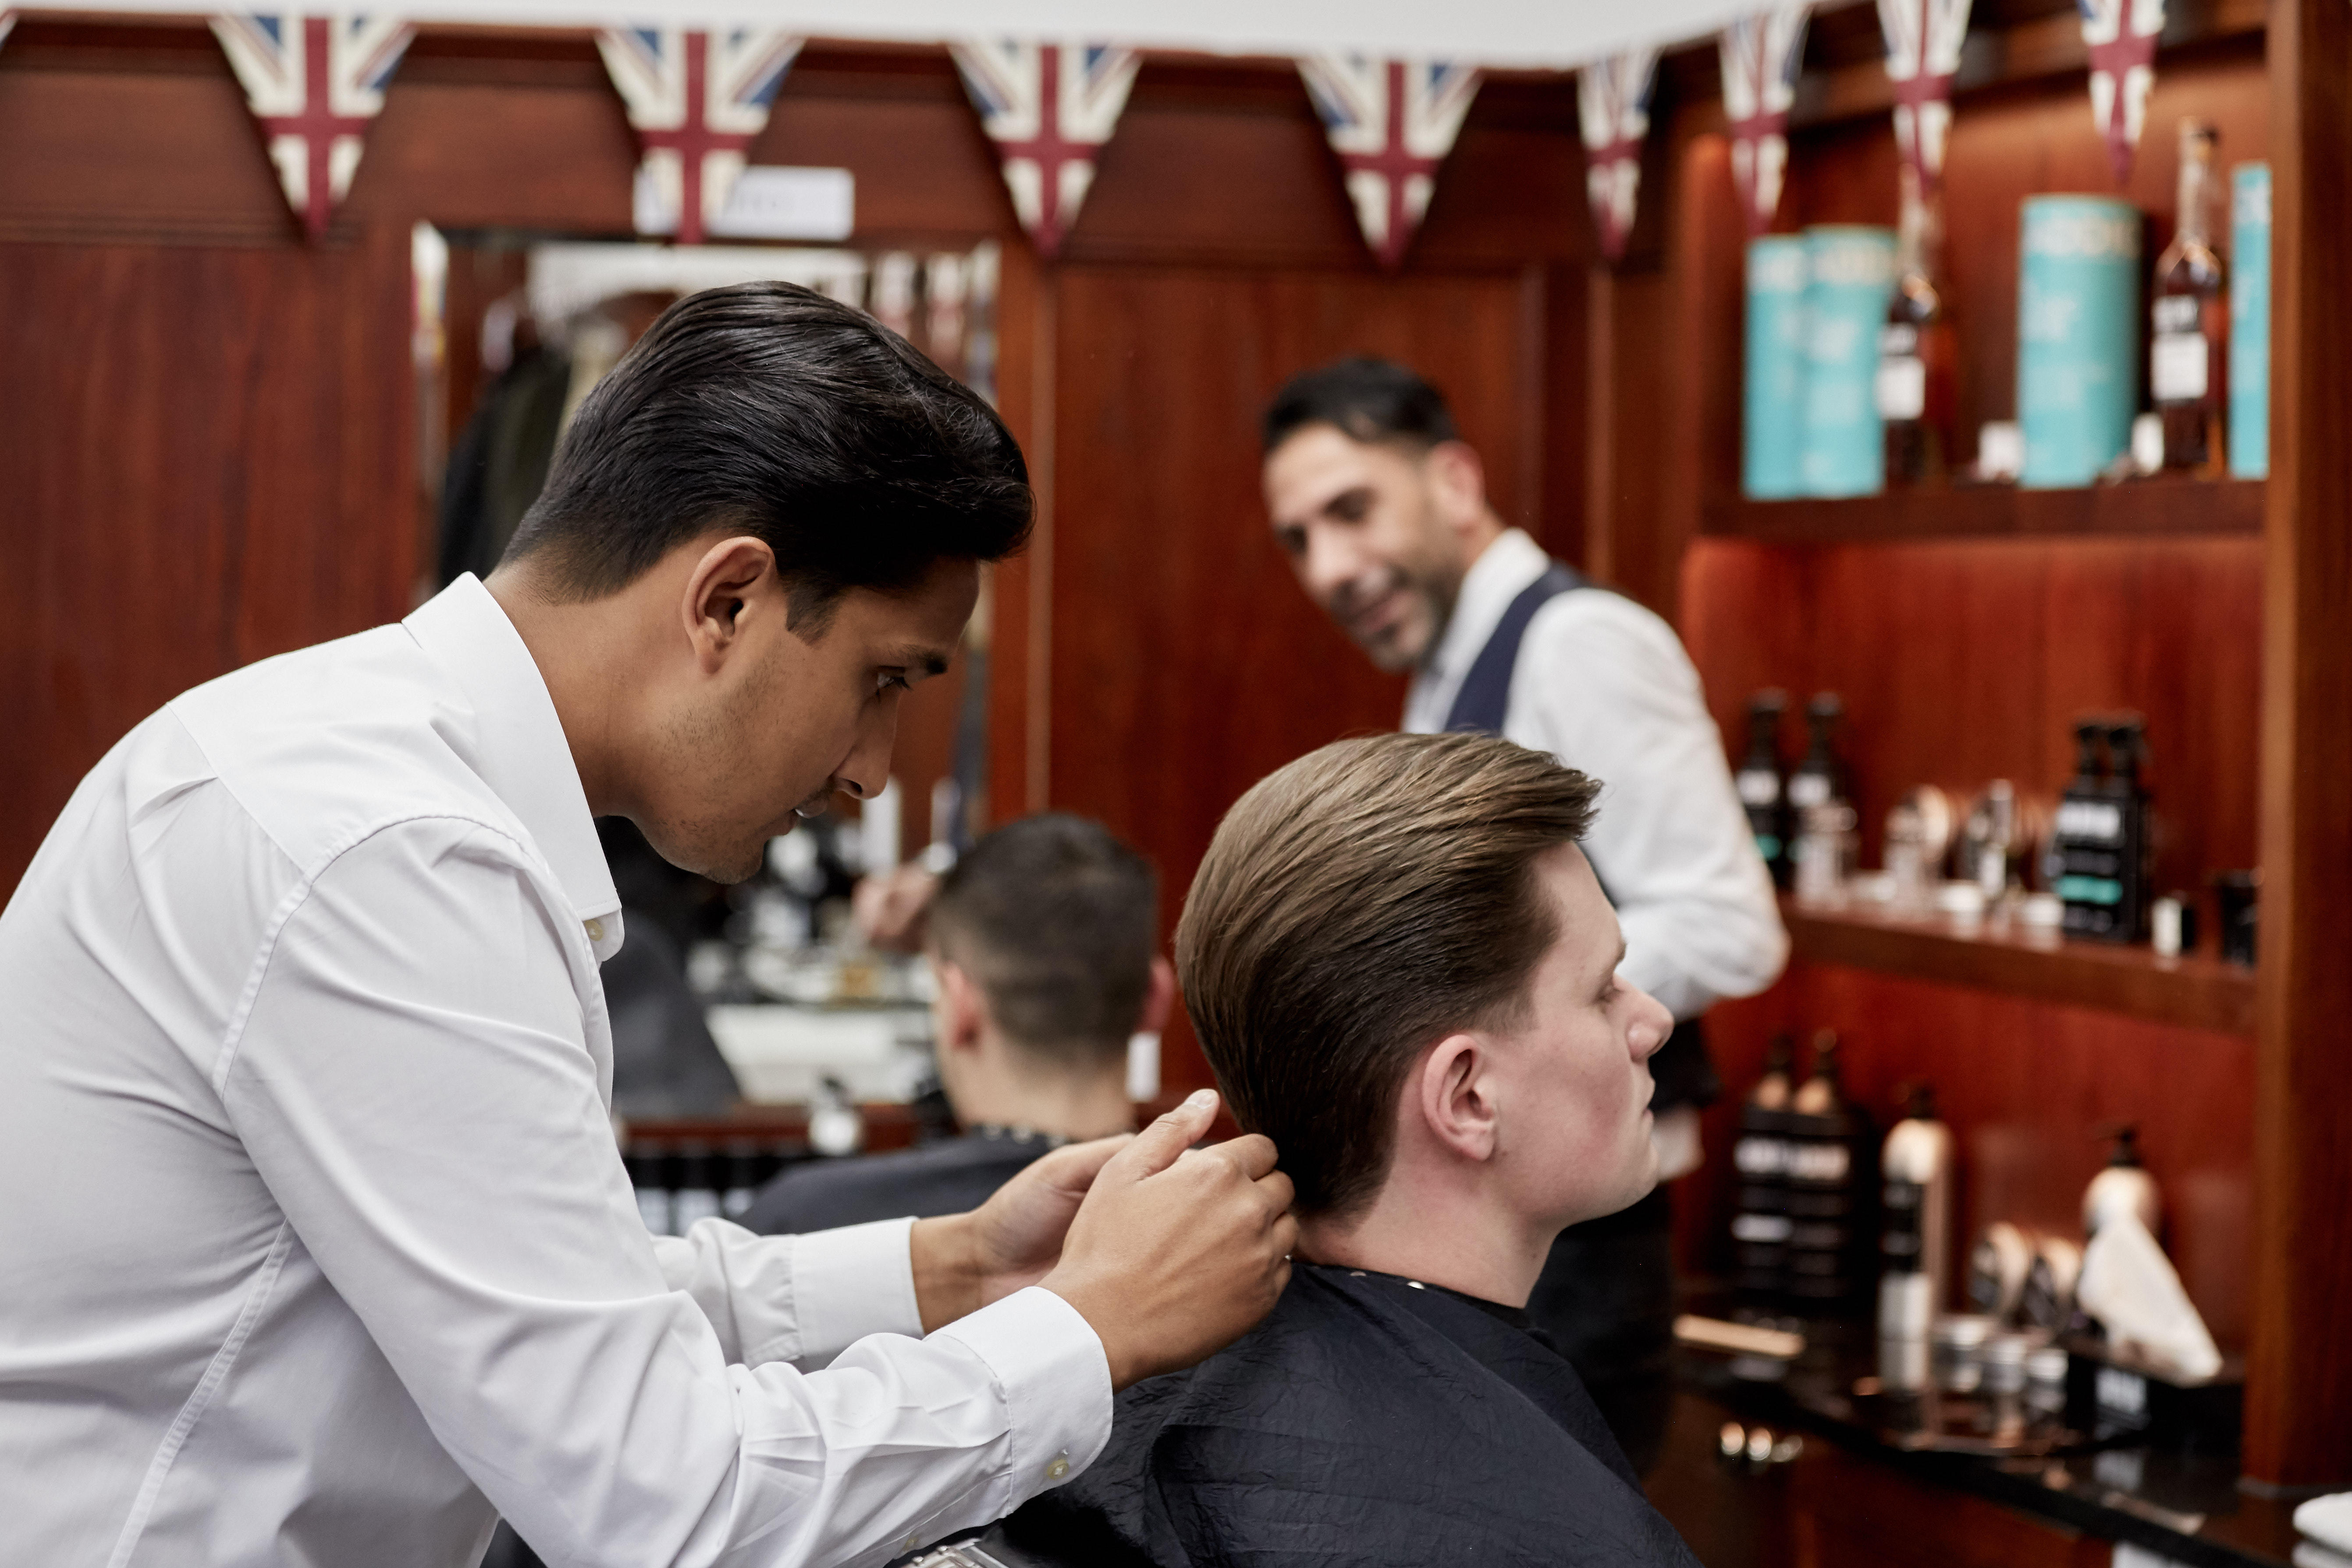 Images Pall Mall Barbers Birmingham